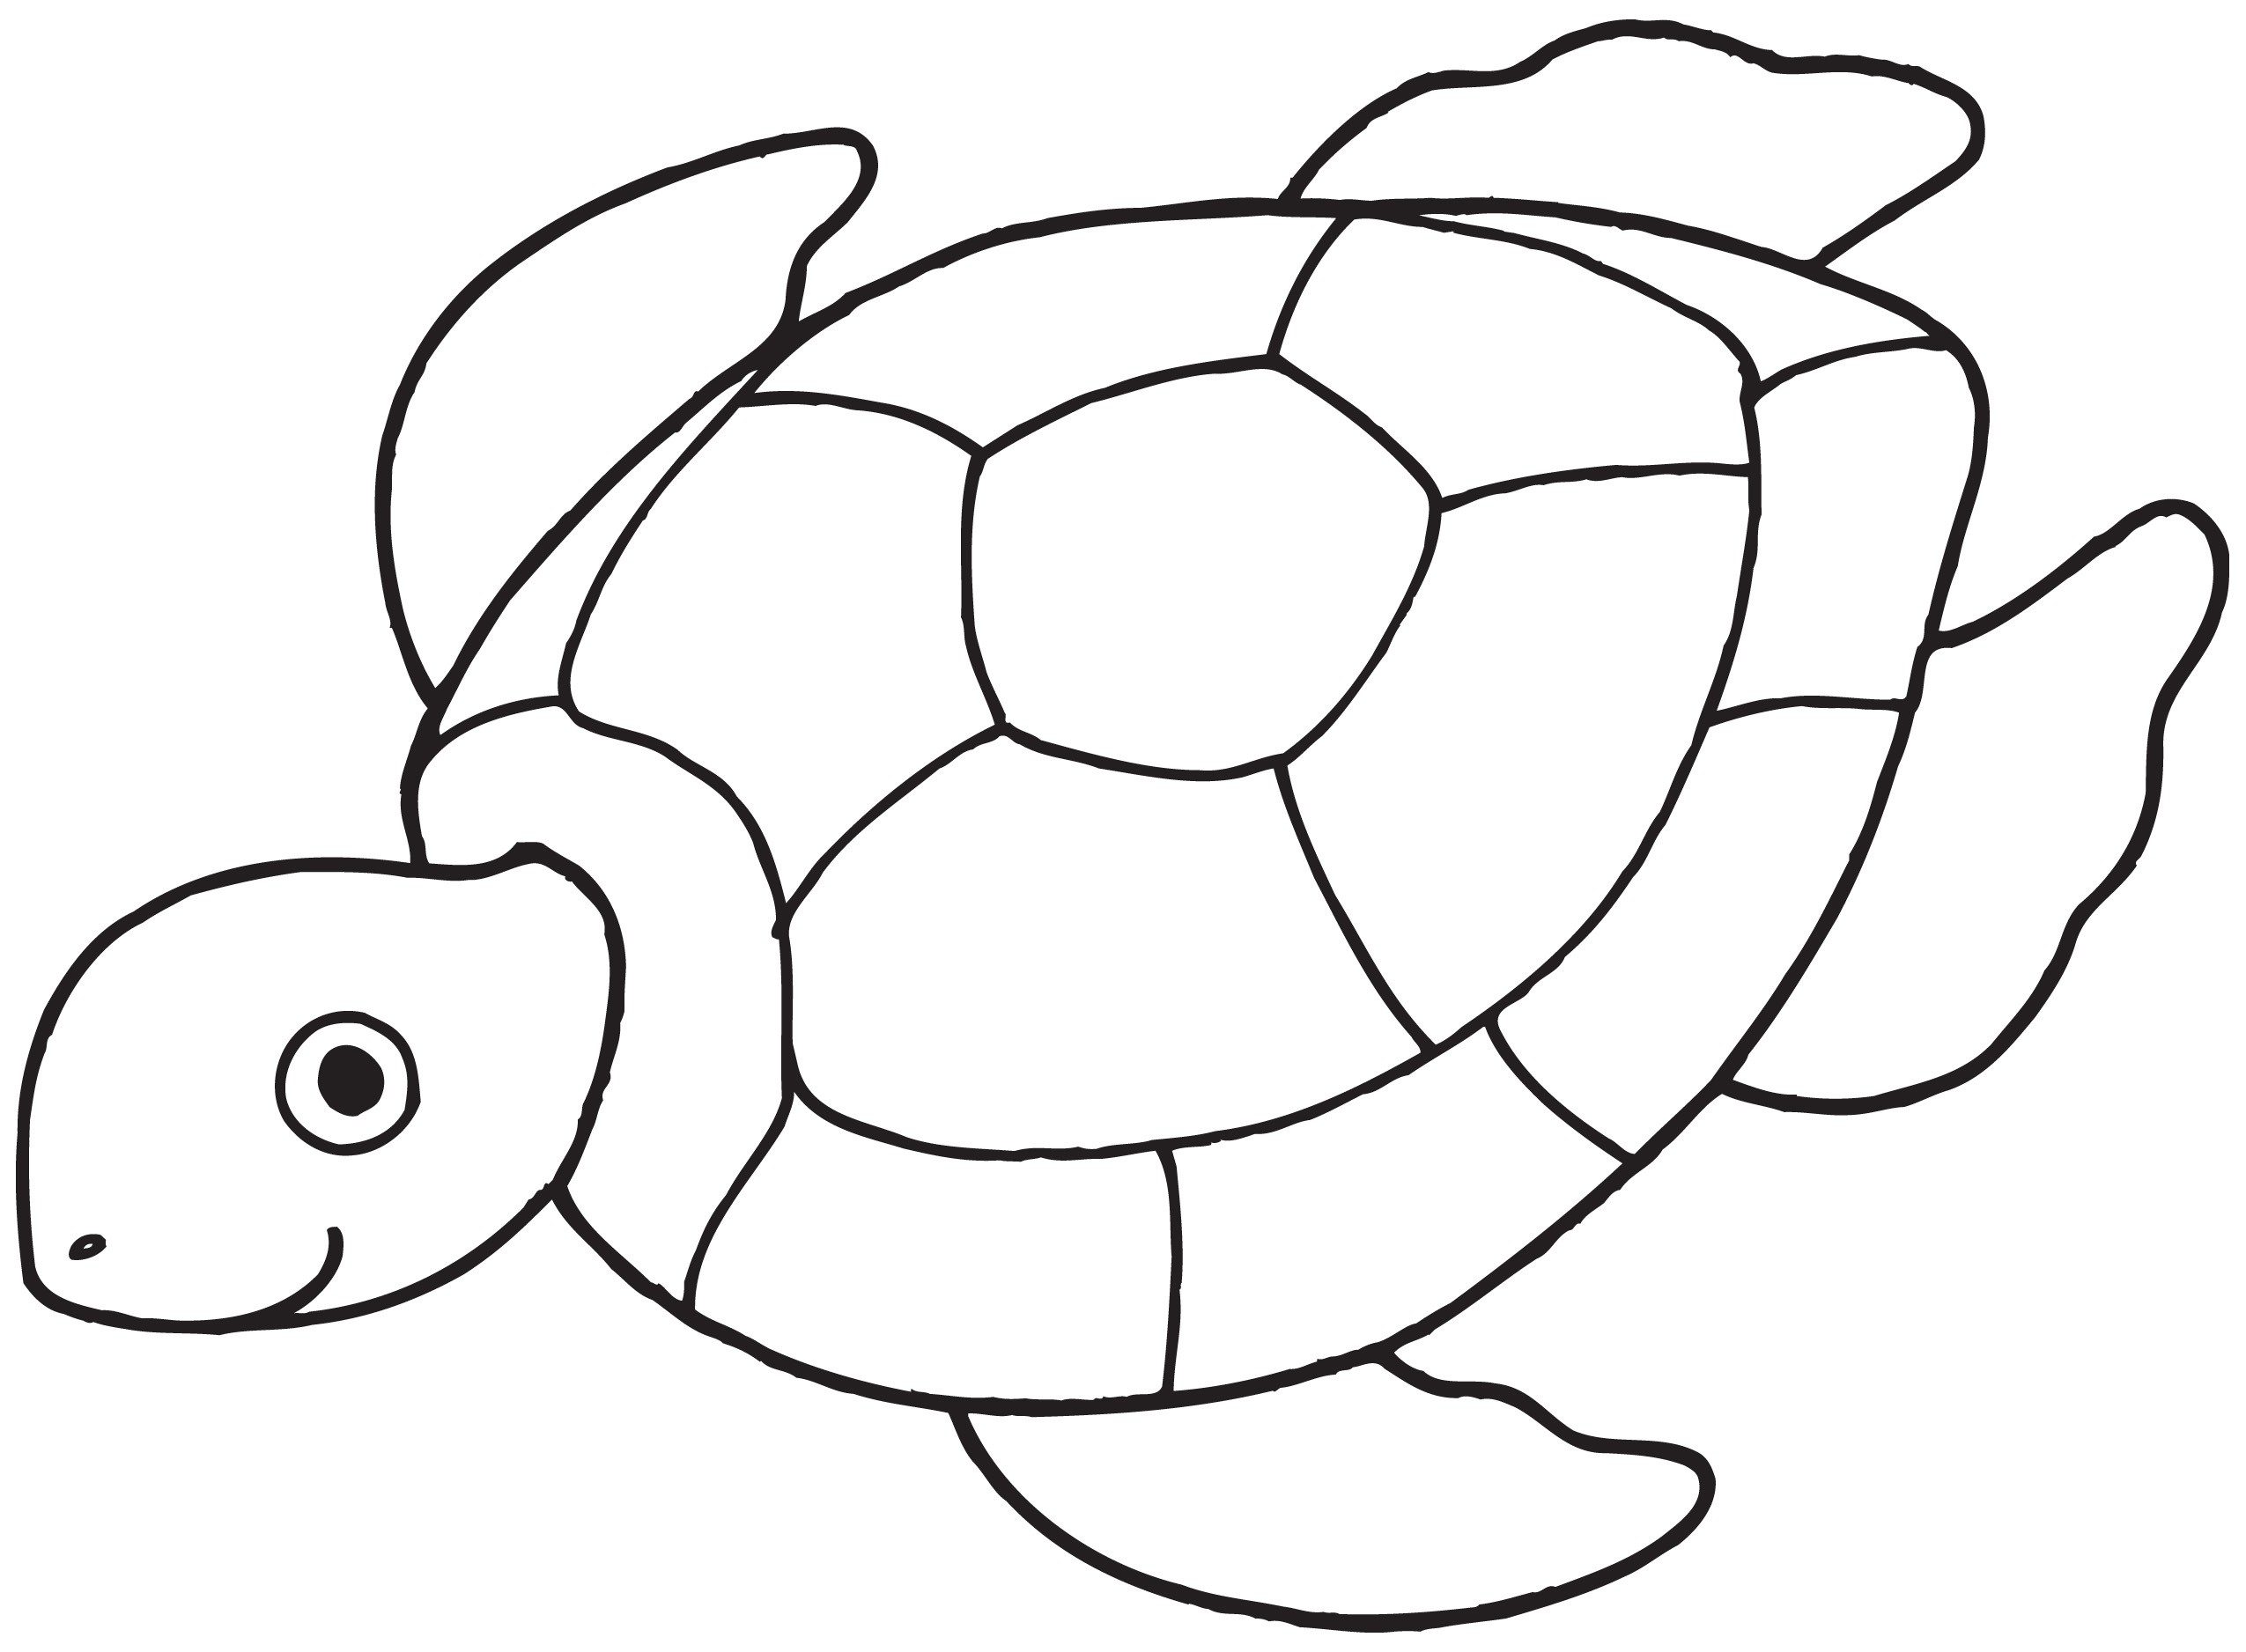 Clipart Turtle - Cliparts.co